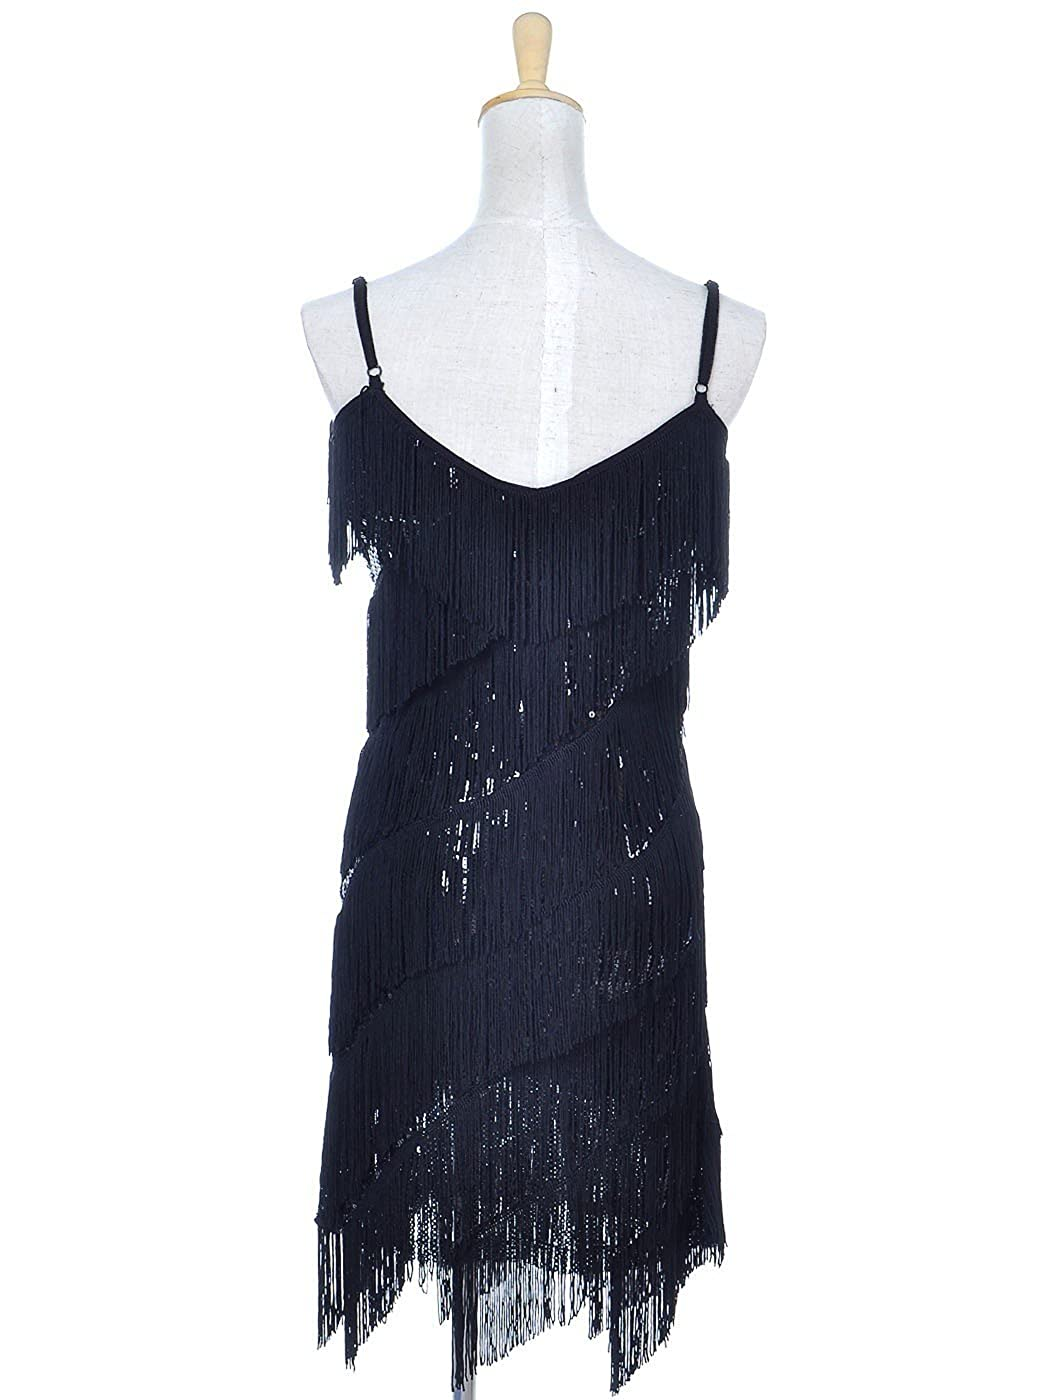 7b6b4ddd6a3 Amazon.com  Anna-Kaci Womens Fringe Sequin Strap Backless 1920s Flapper Party  Mini Dress  Clothing